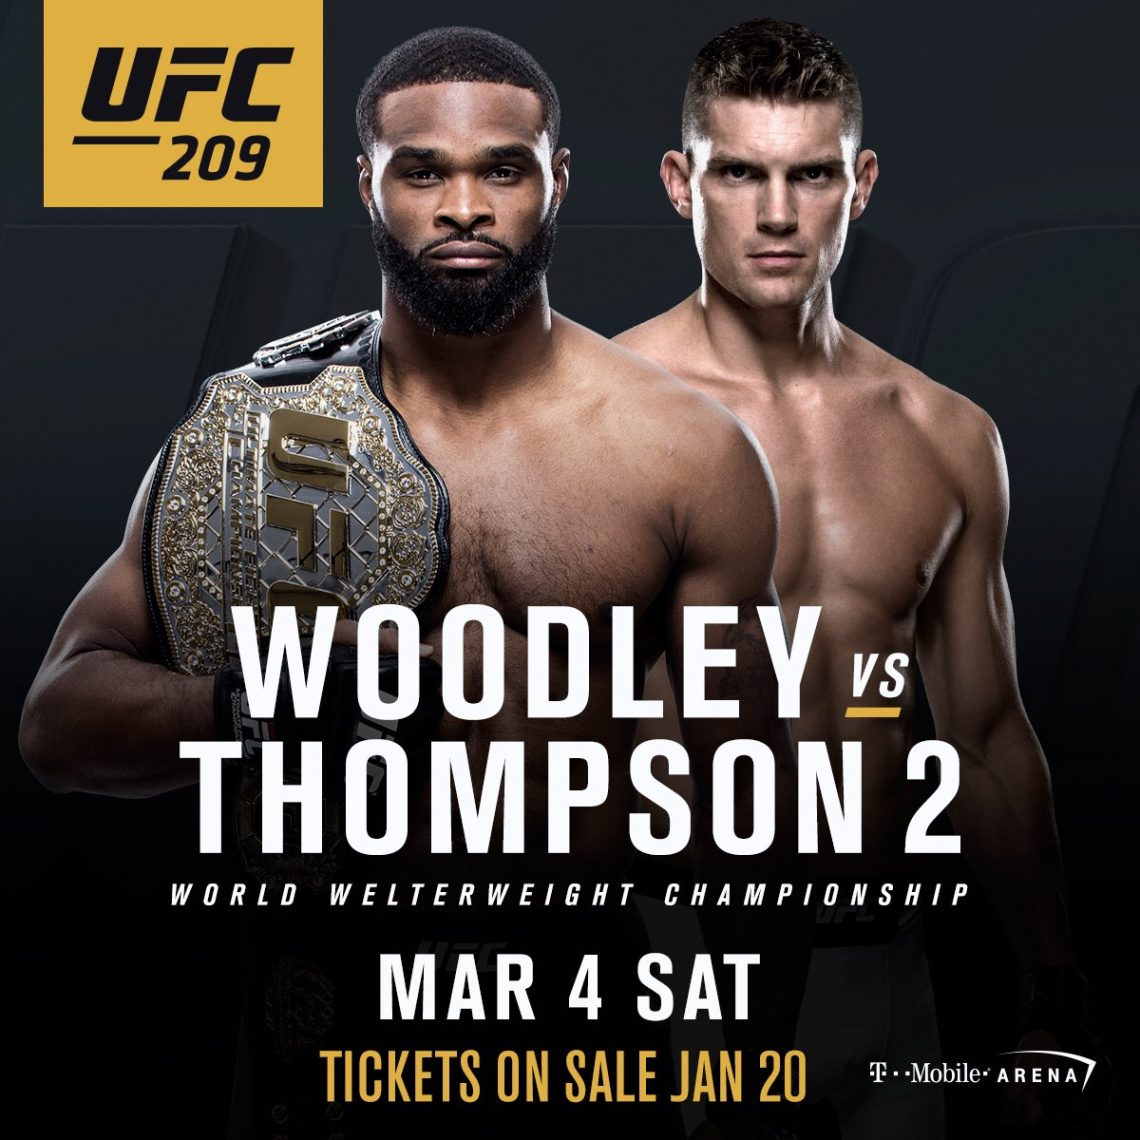 Risultati UFC 209: Woodley vs. Thompson 2 1